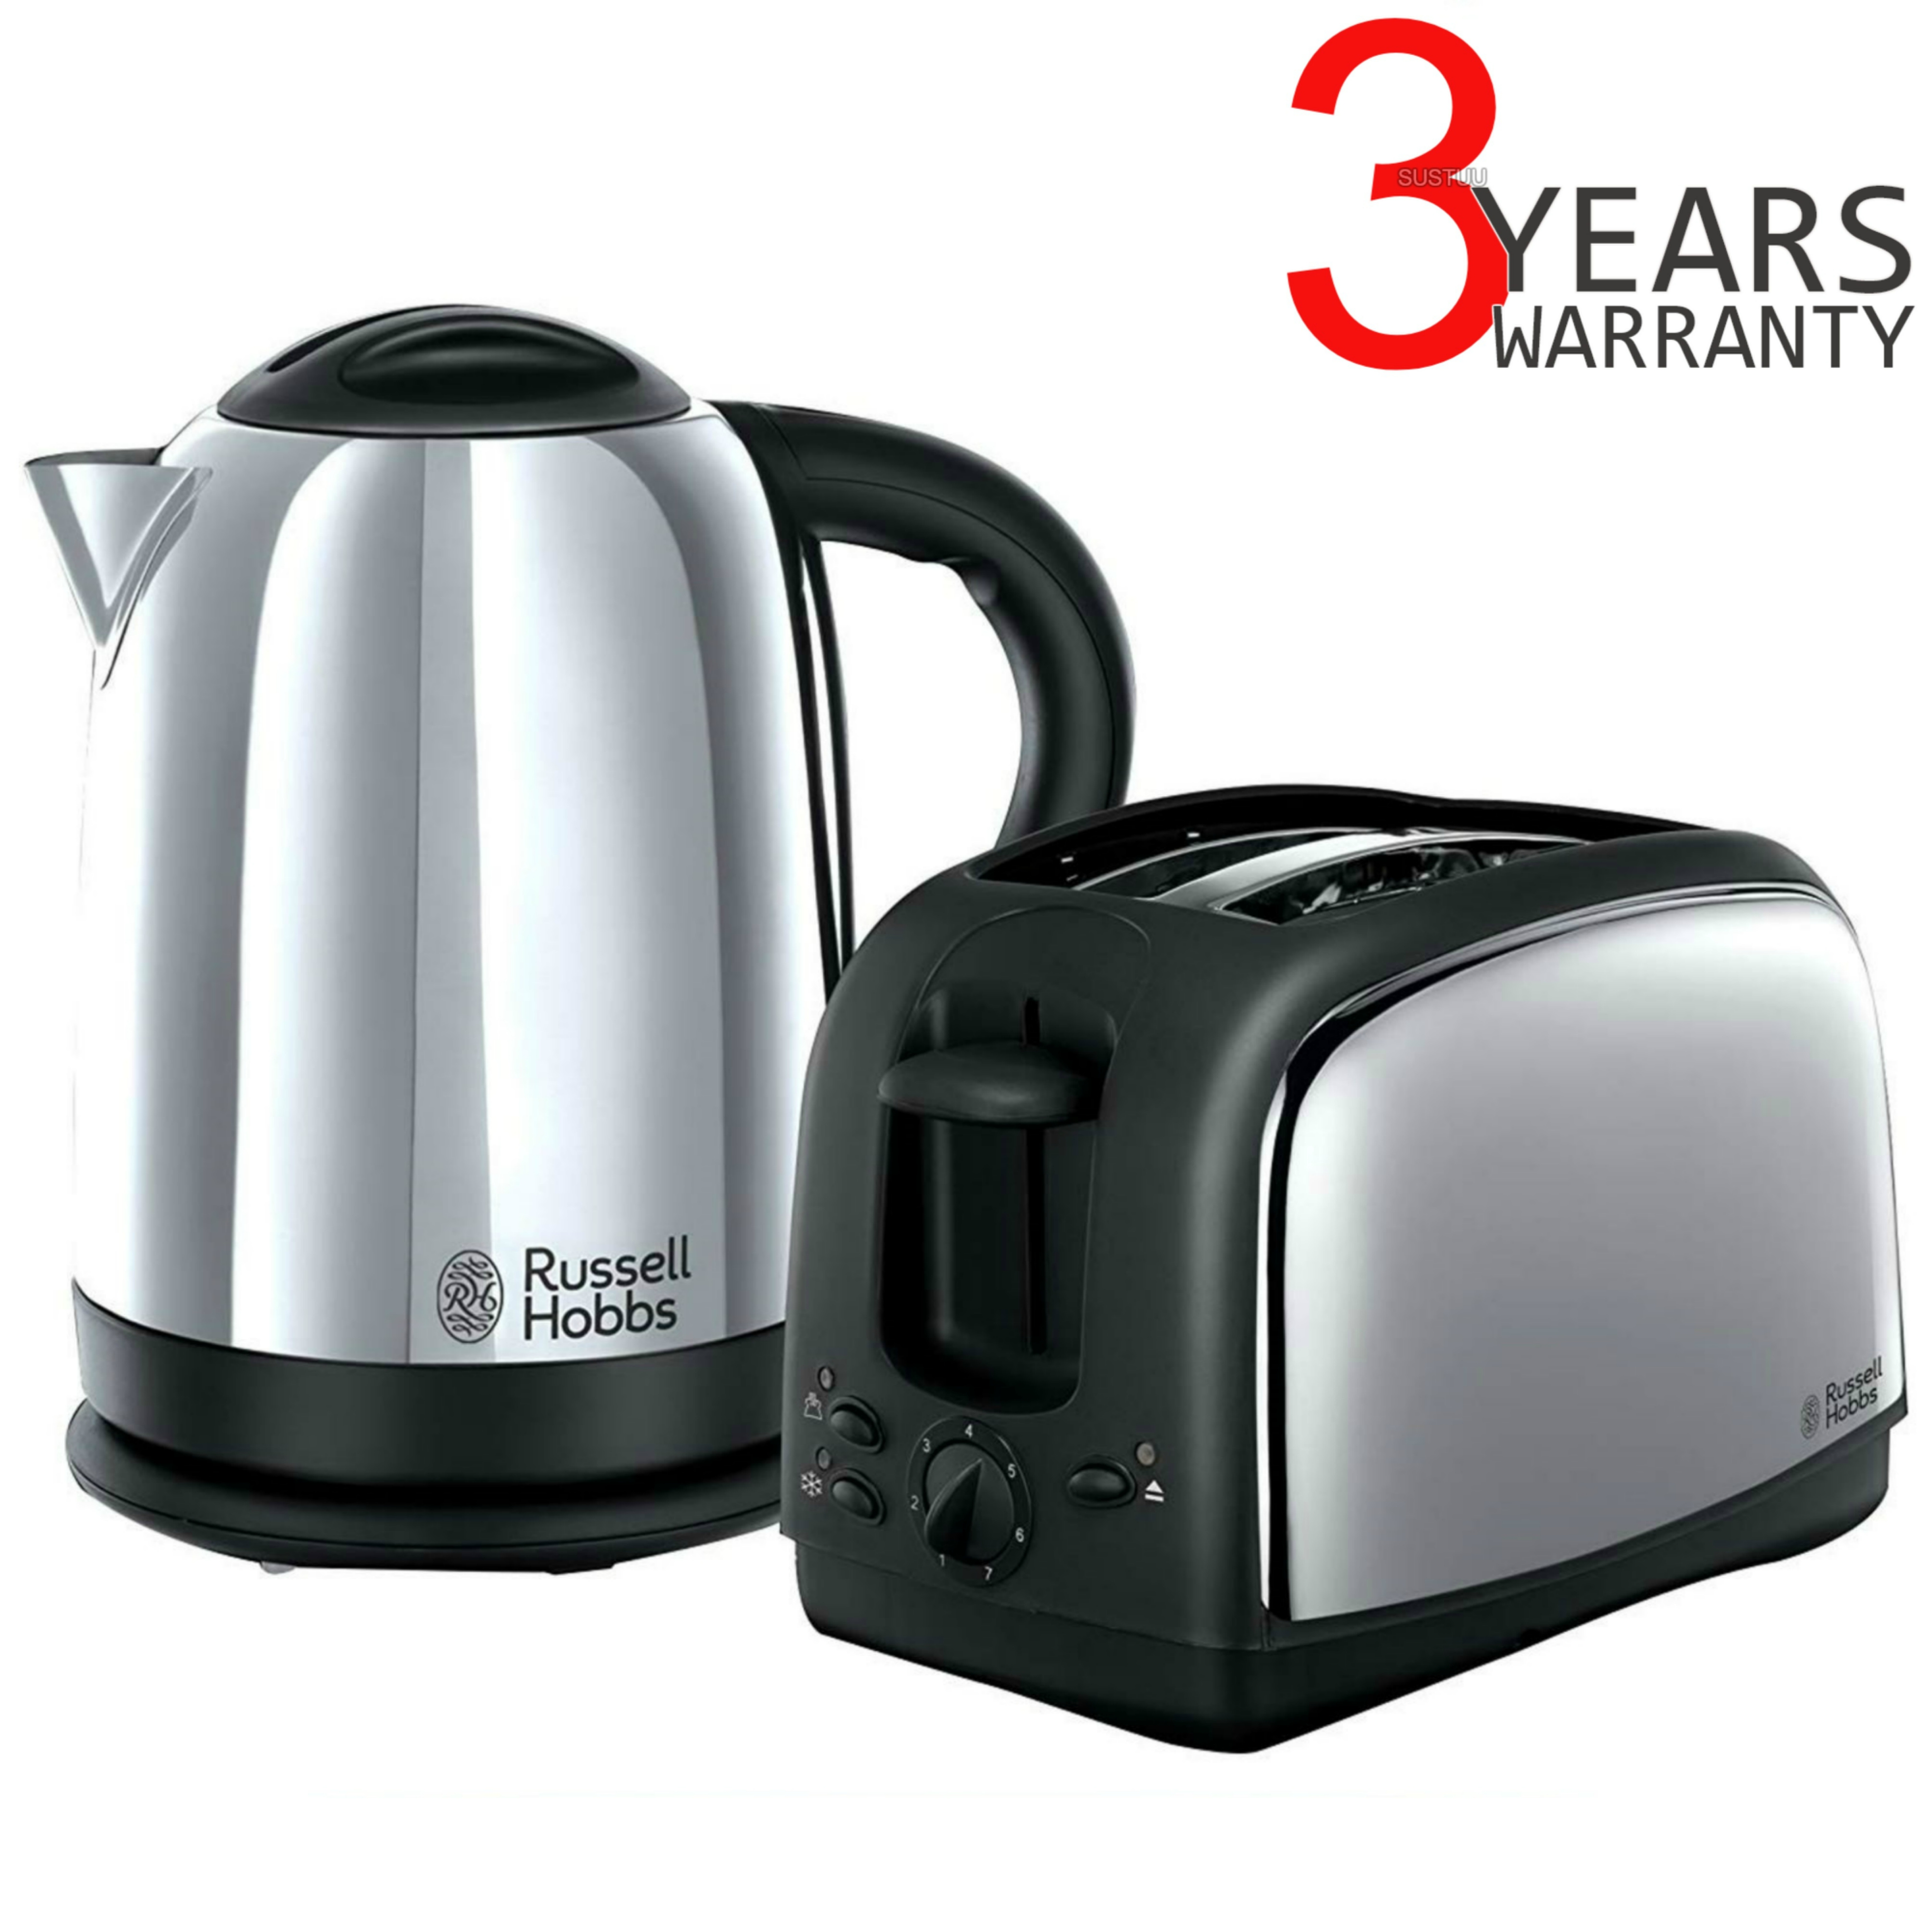 Russell Hobbs 21830 Lincoln Twin Pack 2 Slice Toaster & 1.7 Litre Kettle - Silver